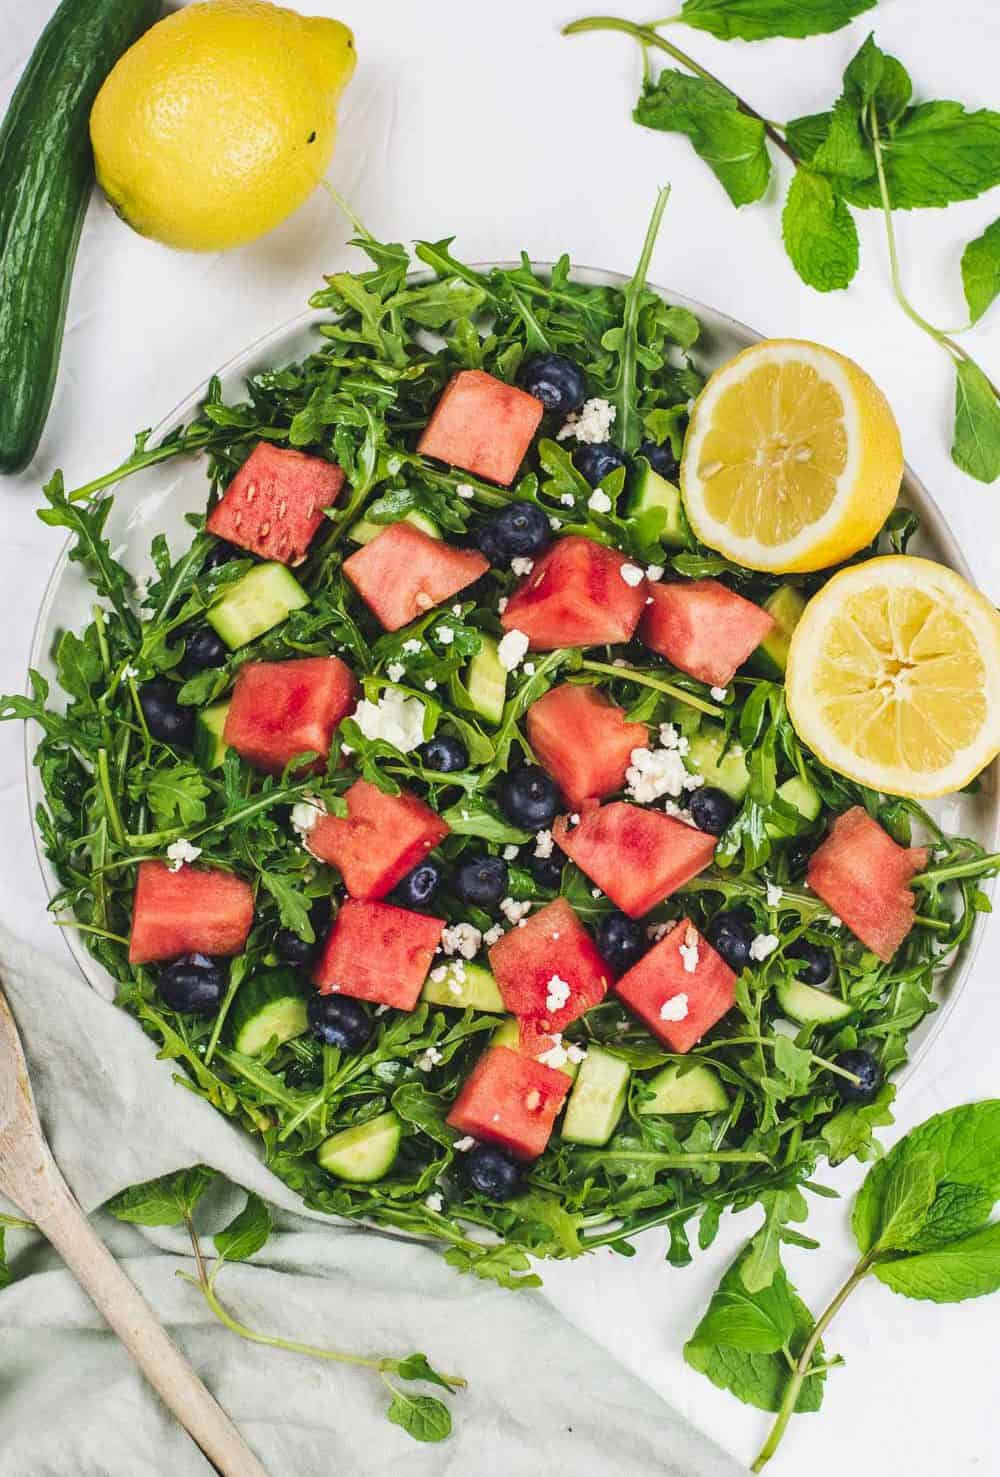 Overhead shot of plate of watermelon and arugula salad with lemons